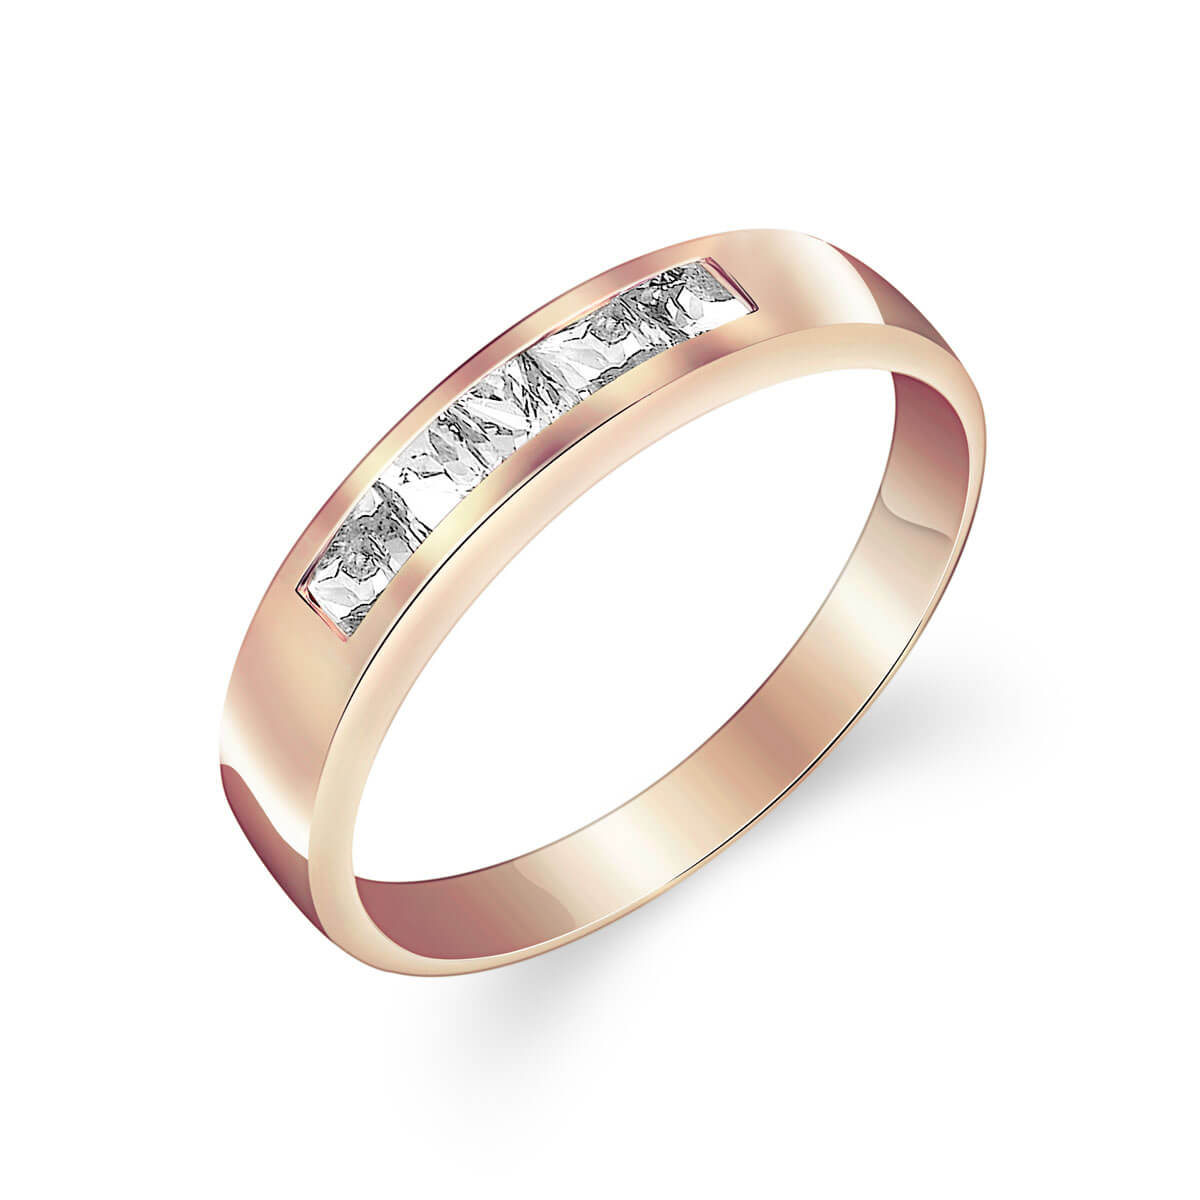 White Topaz Princess Prestige Ring in 9ct Rose Gold